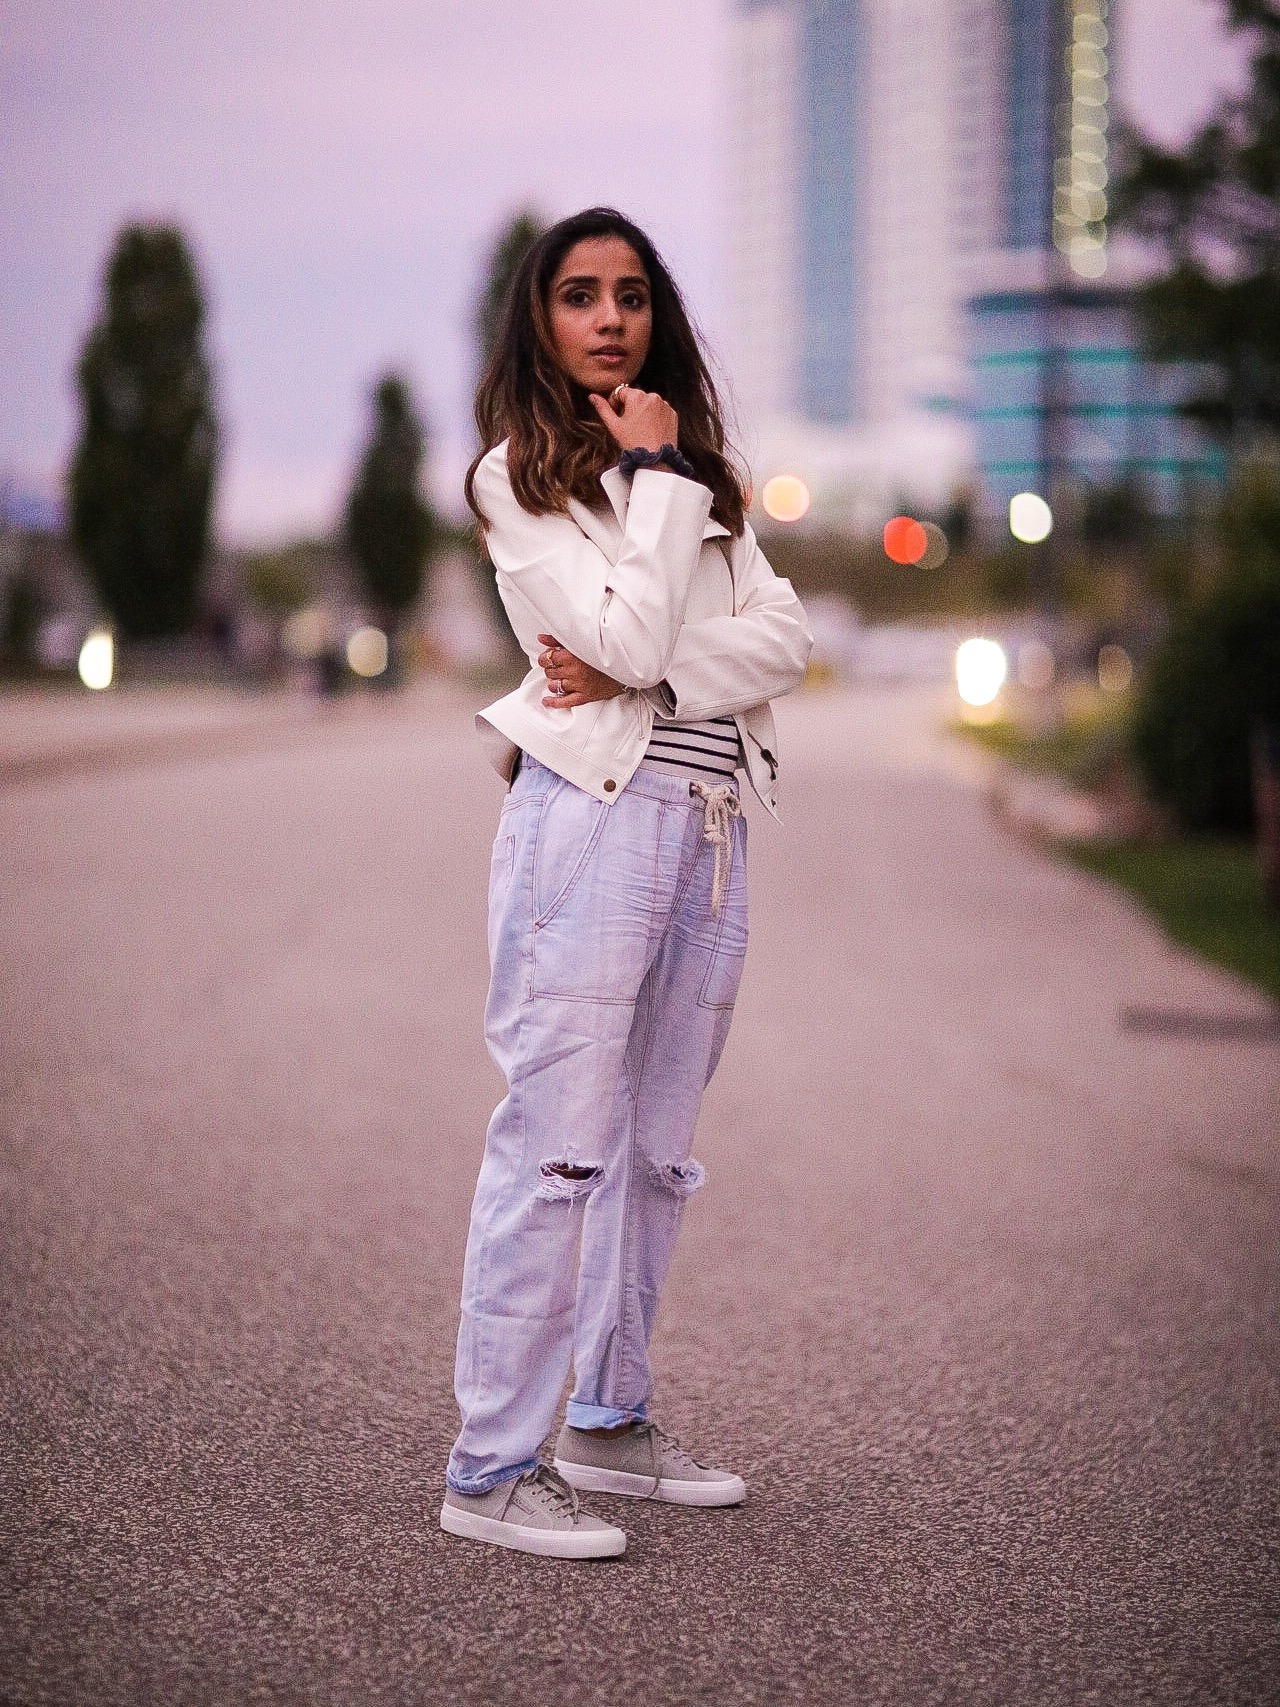 Distressed Jeans for Days Lulus LIGHT WASH DRAWSTRING Faiza Inam Casual Look Summer Fall Fashion Style Toronto Blogger 6